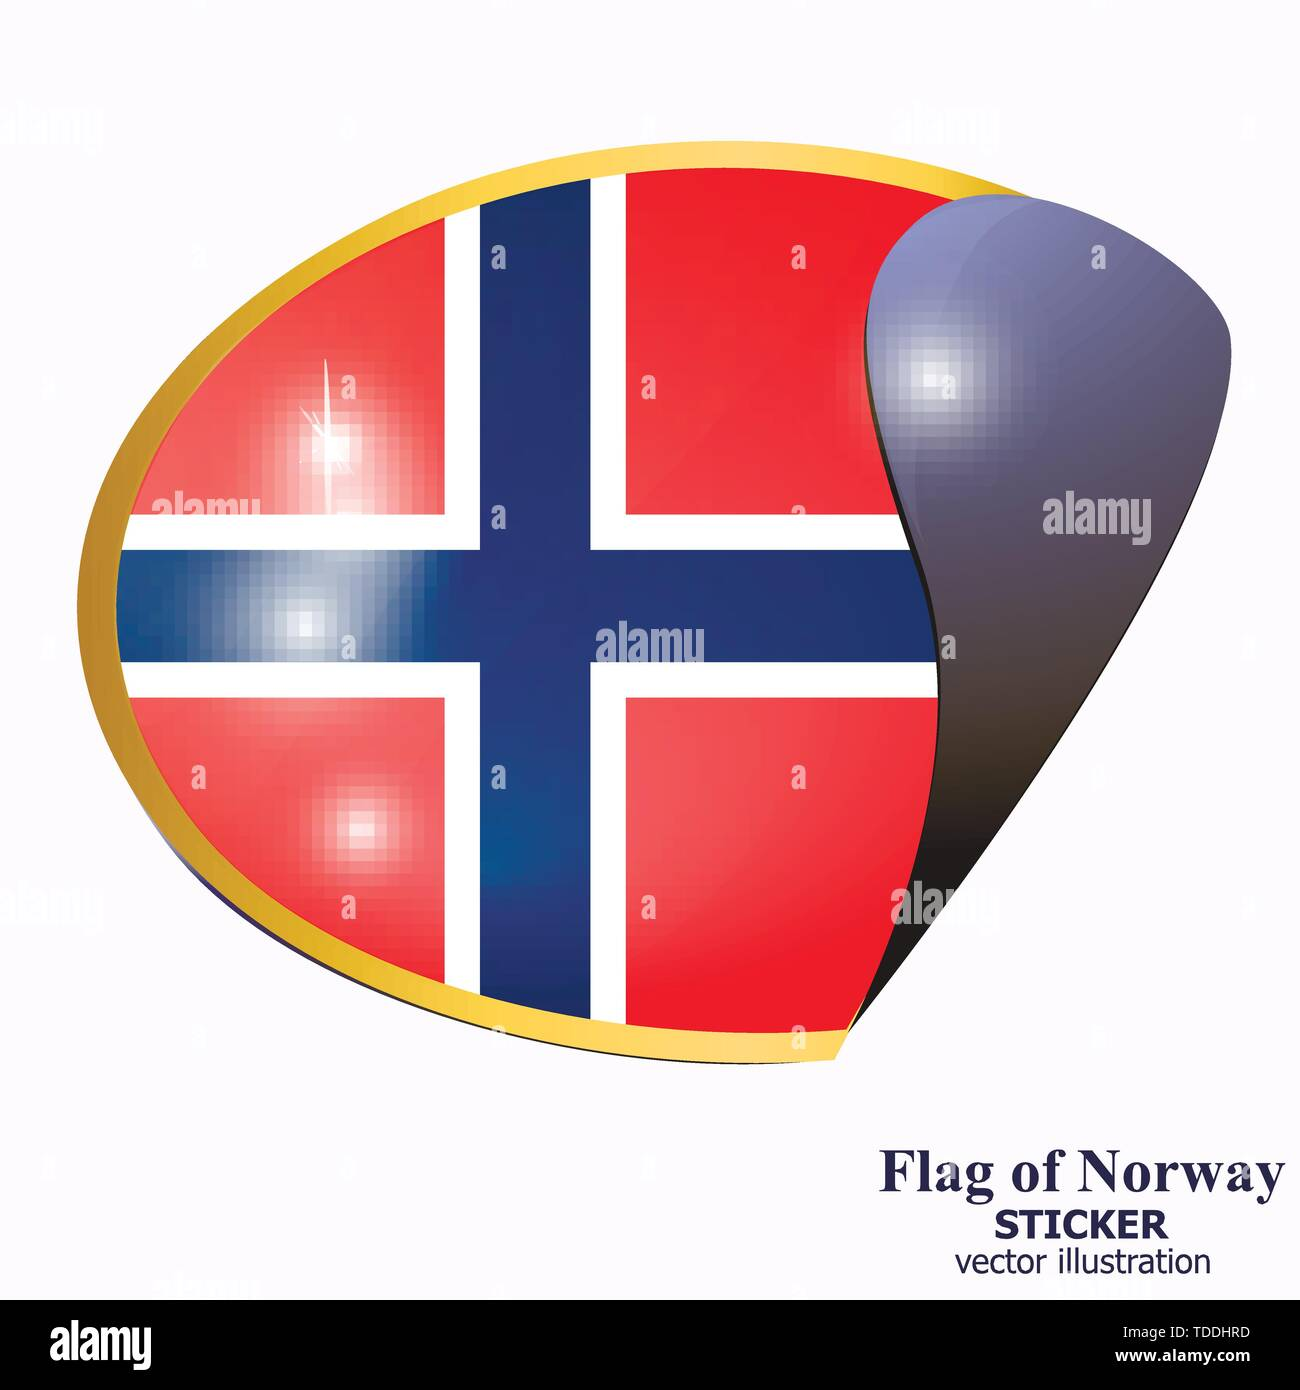 Sticker with flag of Norway. Colorful illustration with flags for web design. Illustration with white background. - Stock Image